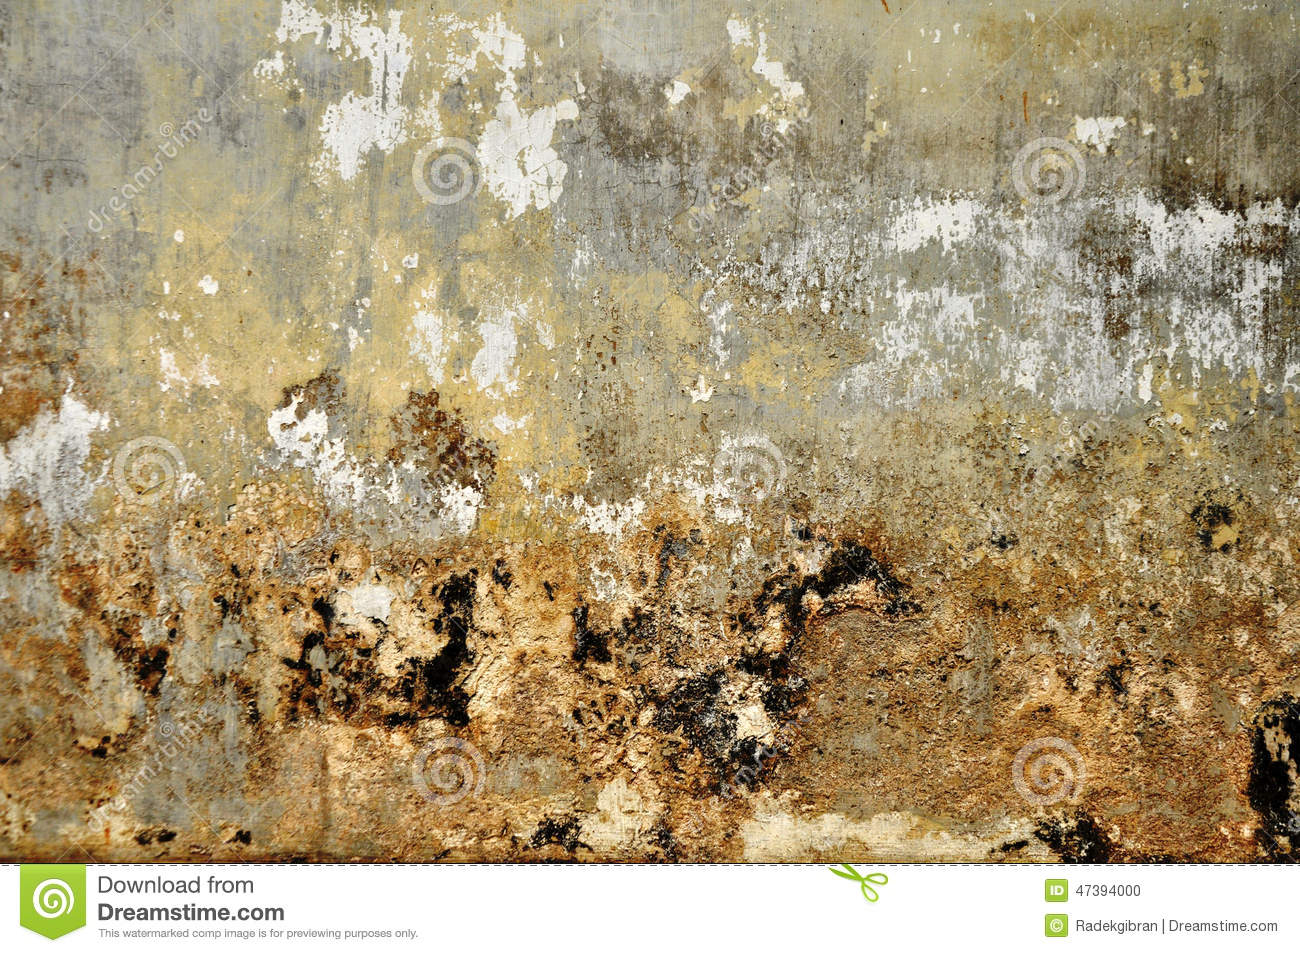 grunge abstract wall texture & backgrounds, Old cement wall texture & backgrounds